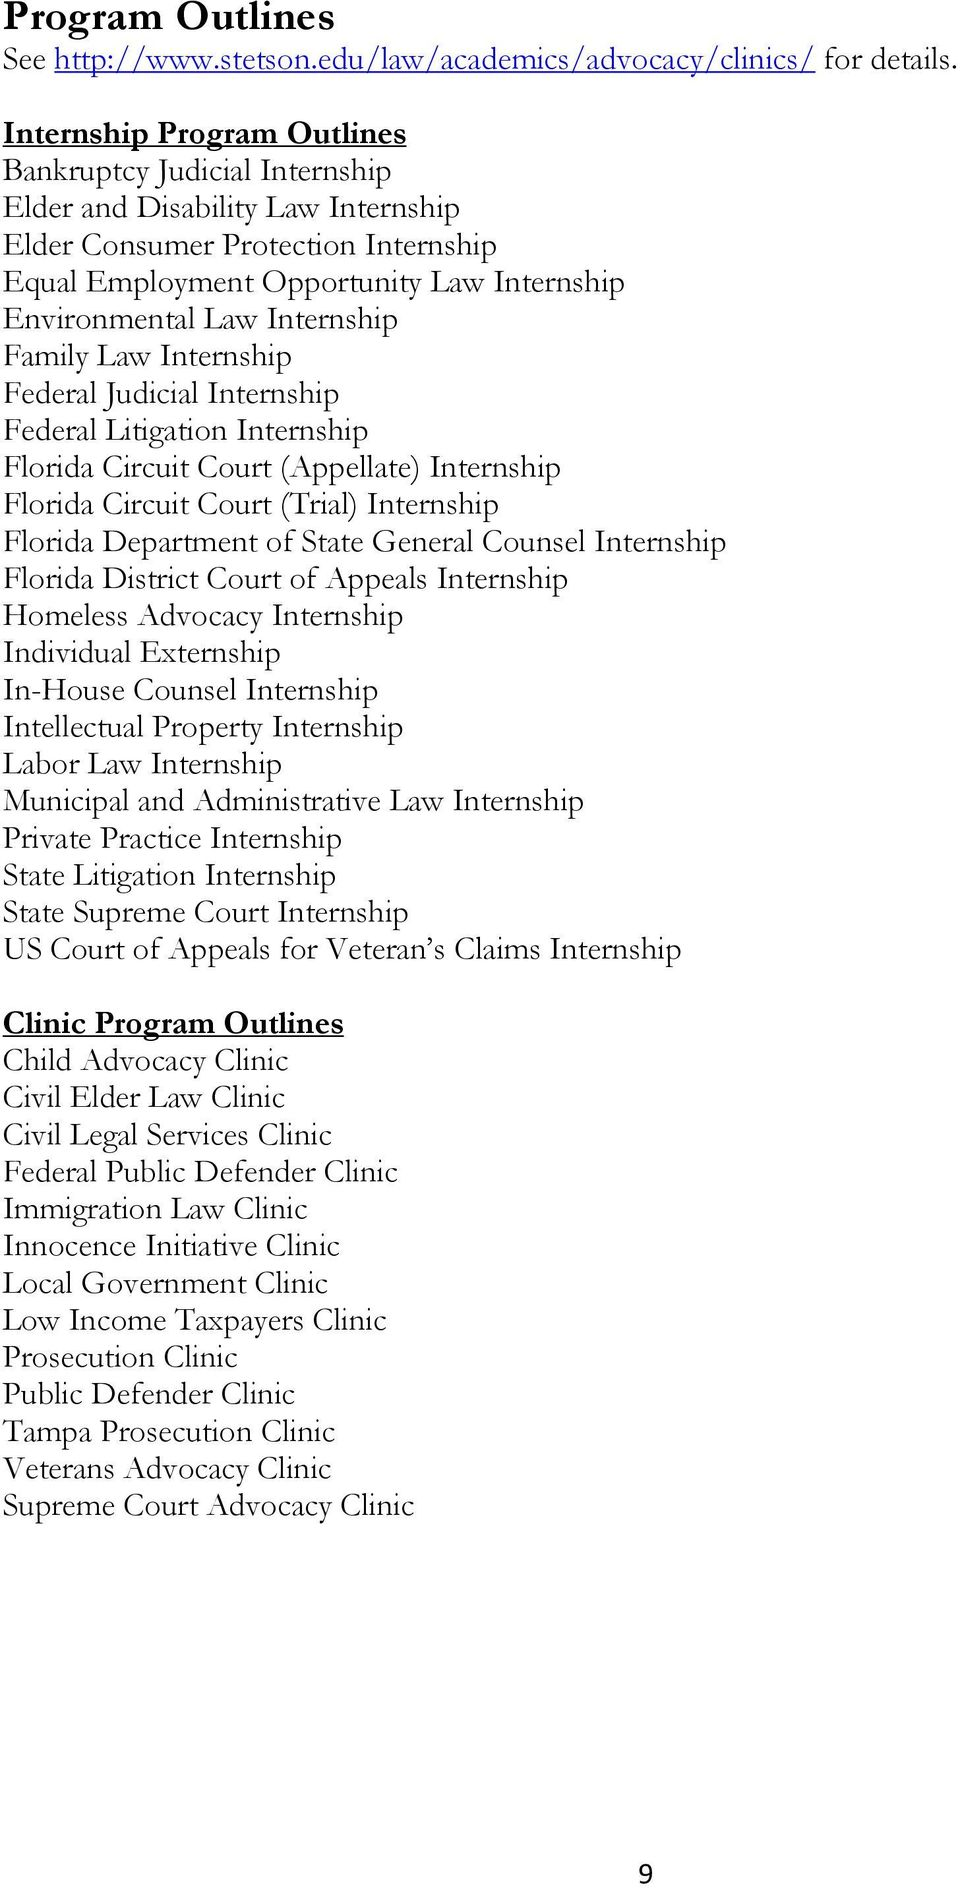 Internship Family Law Internship Federal Judicial Internship Federal Litigation Internship Florida Circuit Court (Appellate) Internship Florida Circuit Court (Trial) Internship Florida Department of